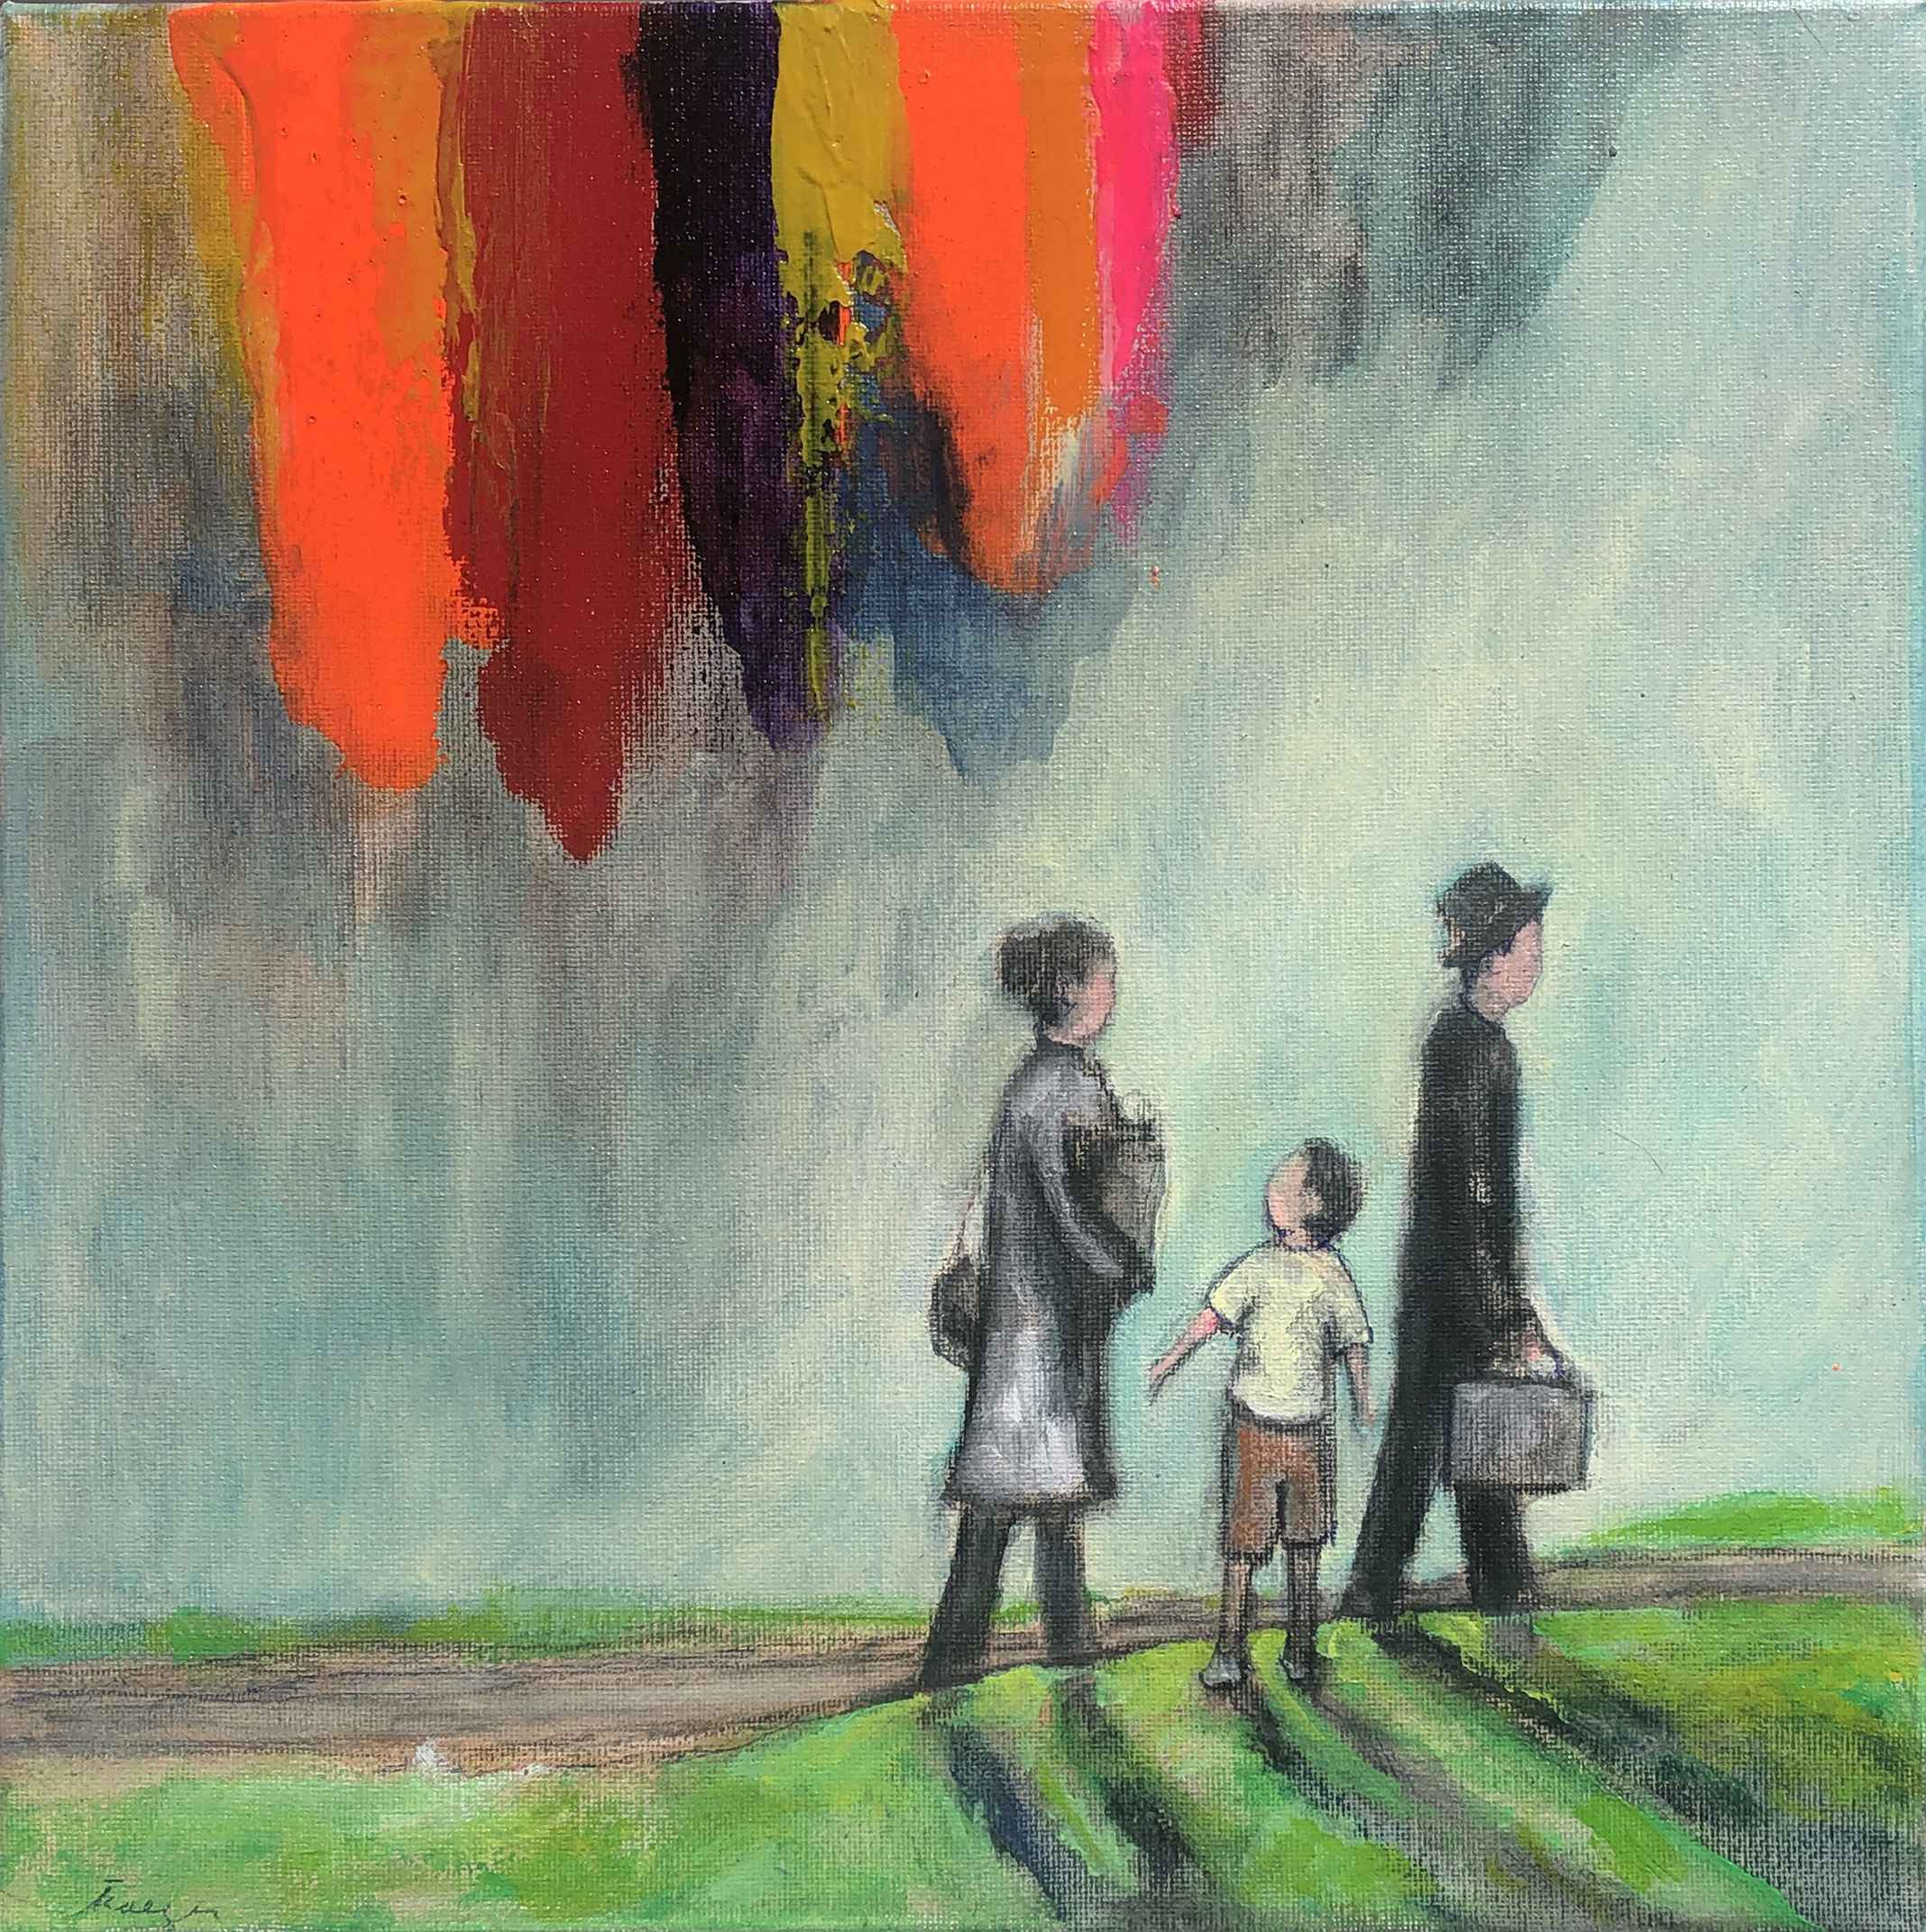 Waiting for the Bus A... by  Traeger di Pietro - Masterpiece Online